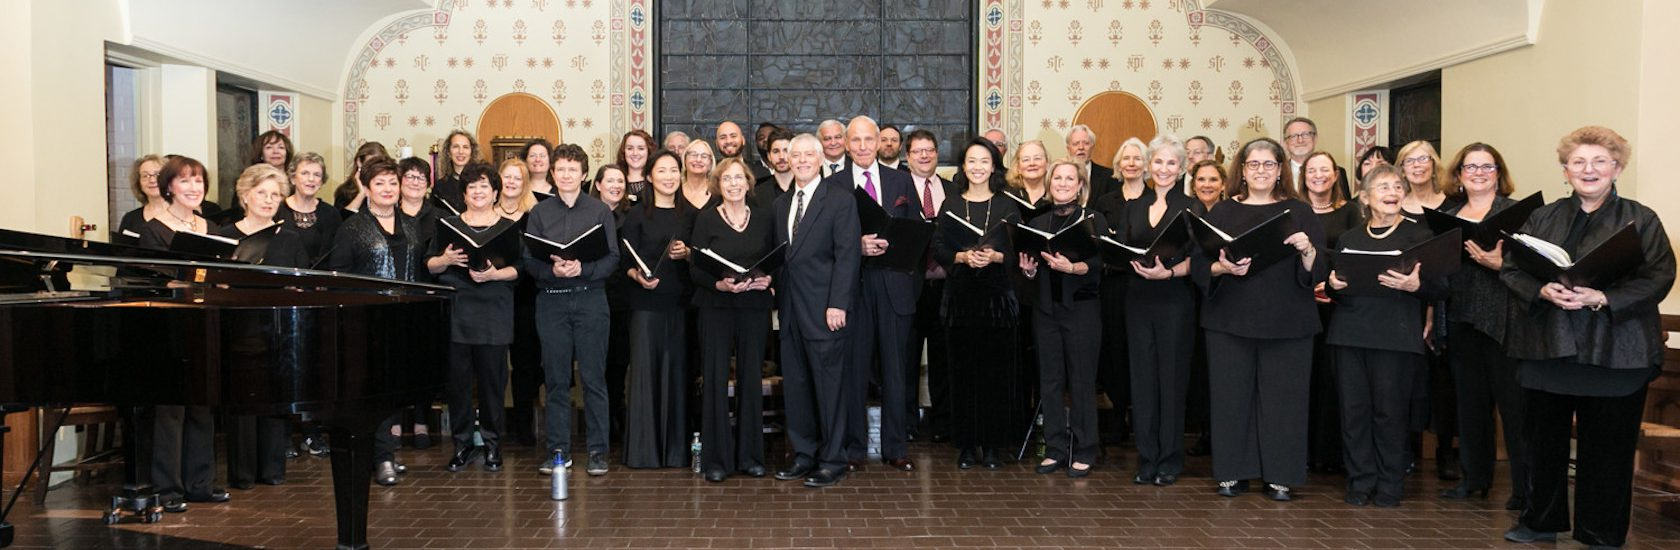 About – The Collegiate Singers of New York City